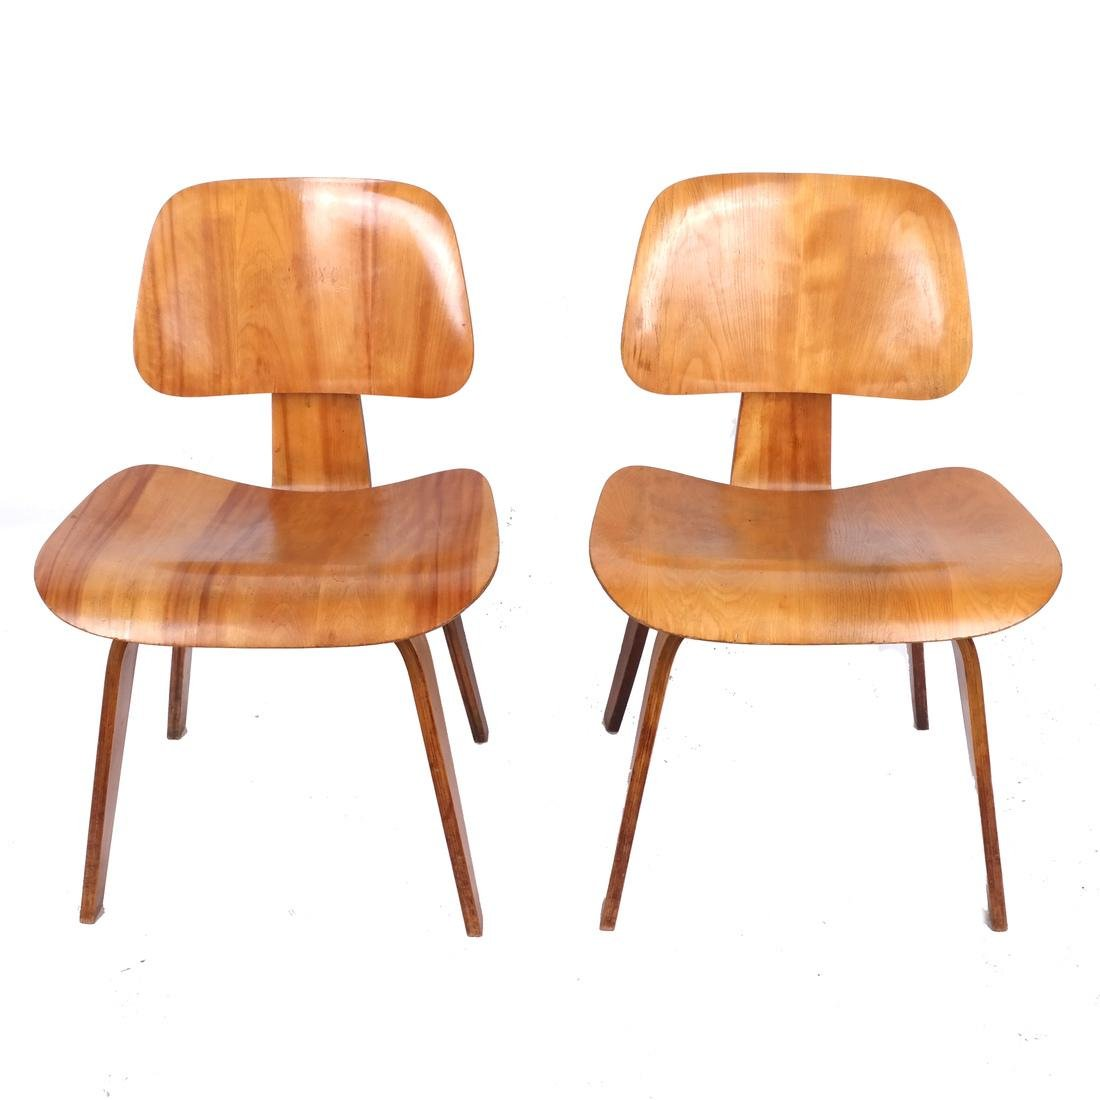 Charles Eames For Herman Miller LCW Chairs